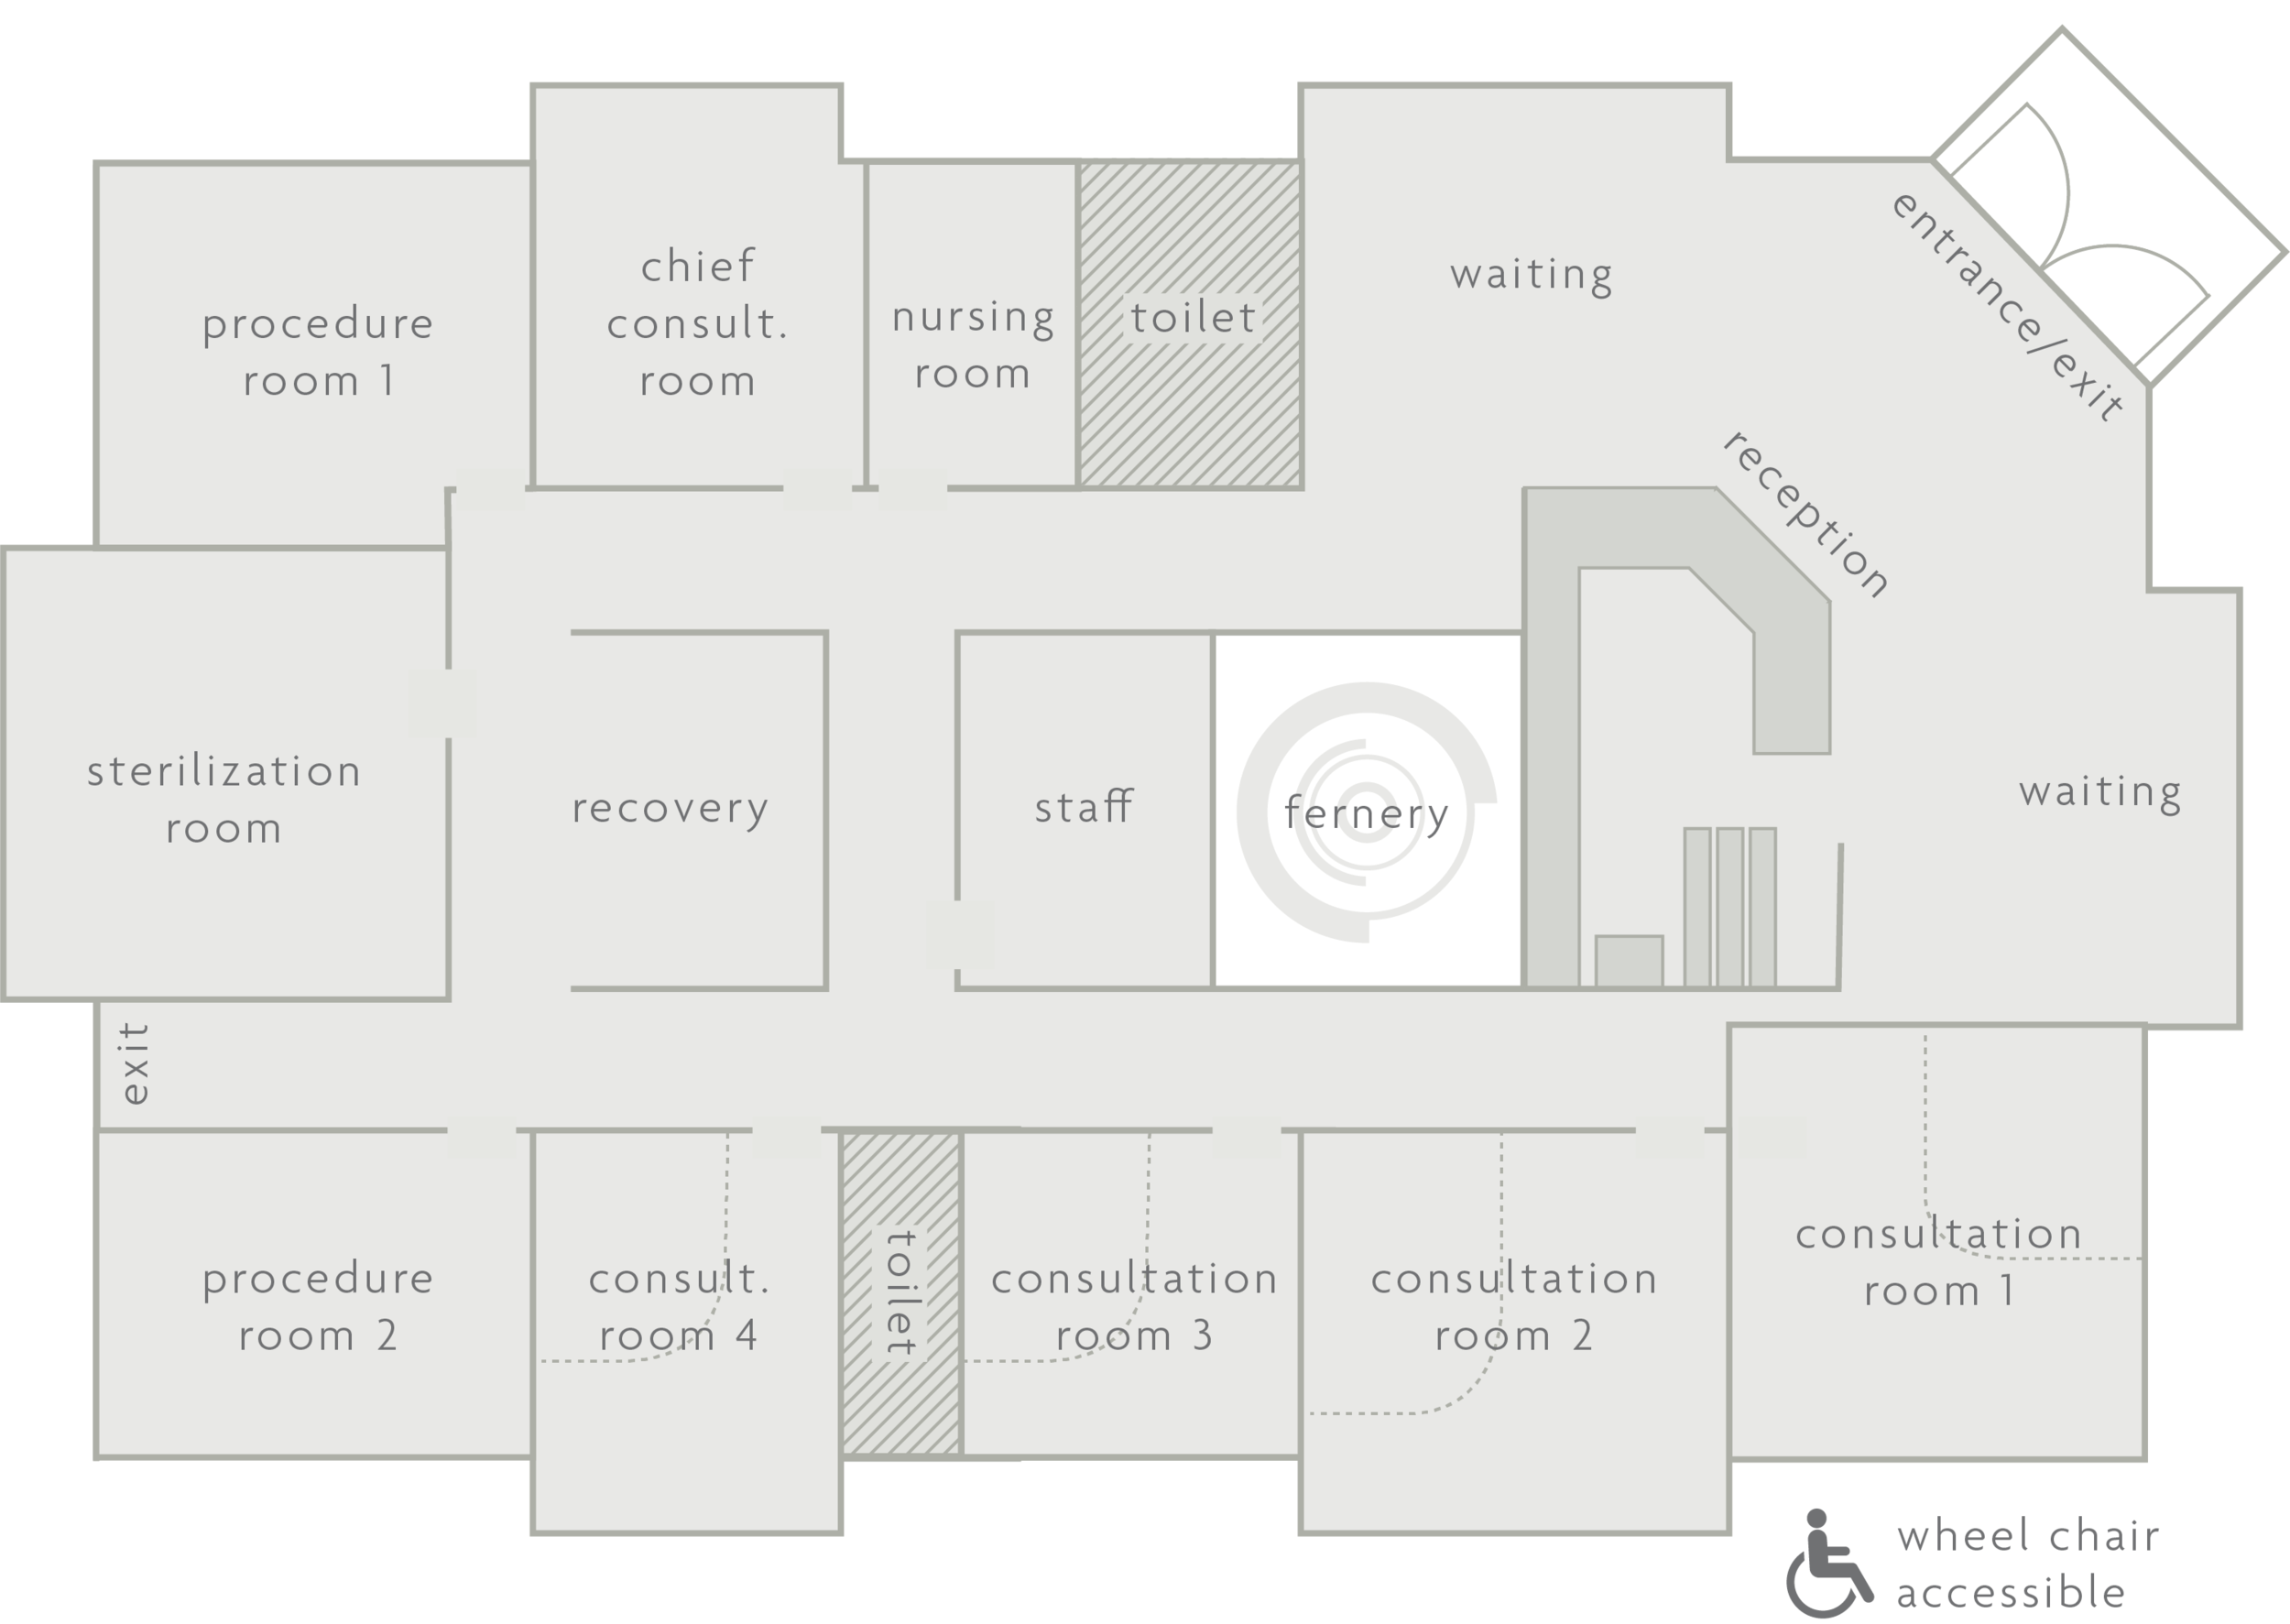 sbs consulting rooms plan_2019update.png